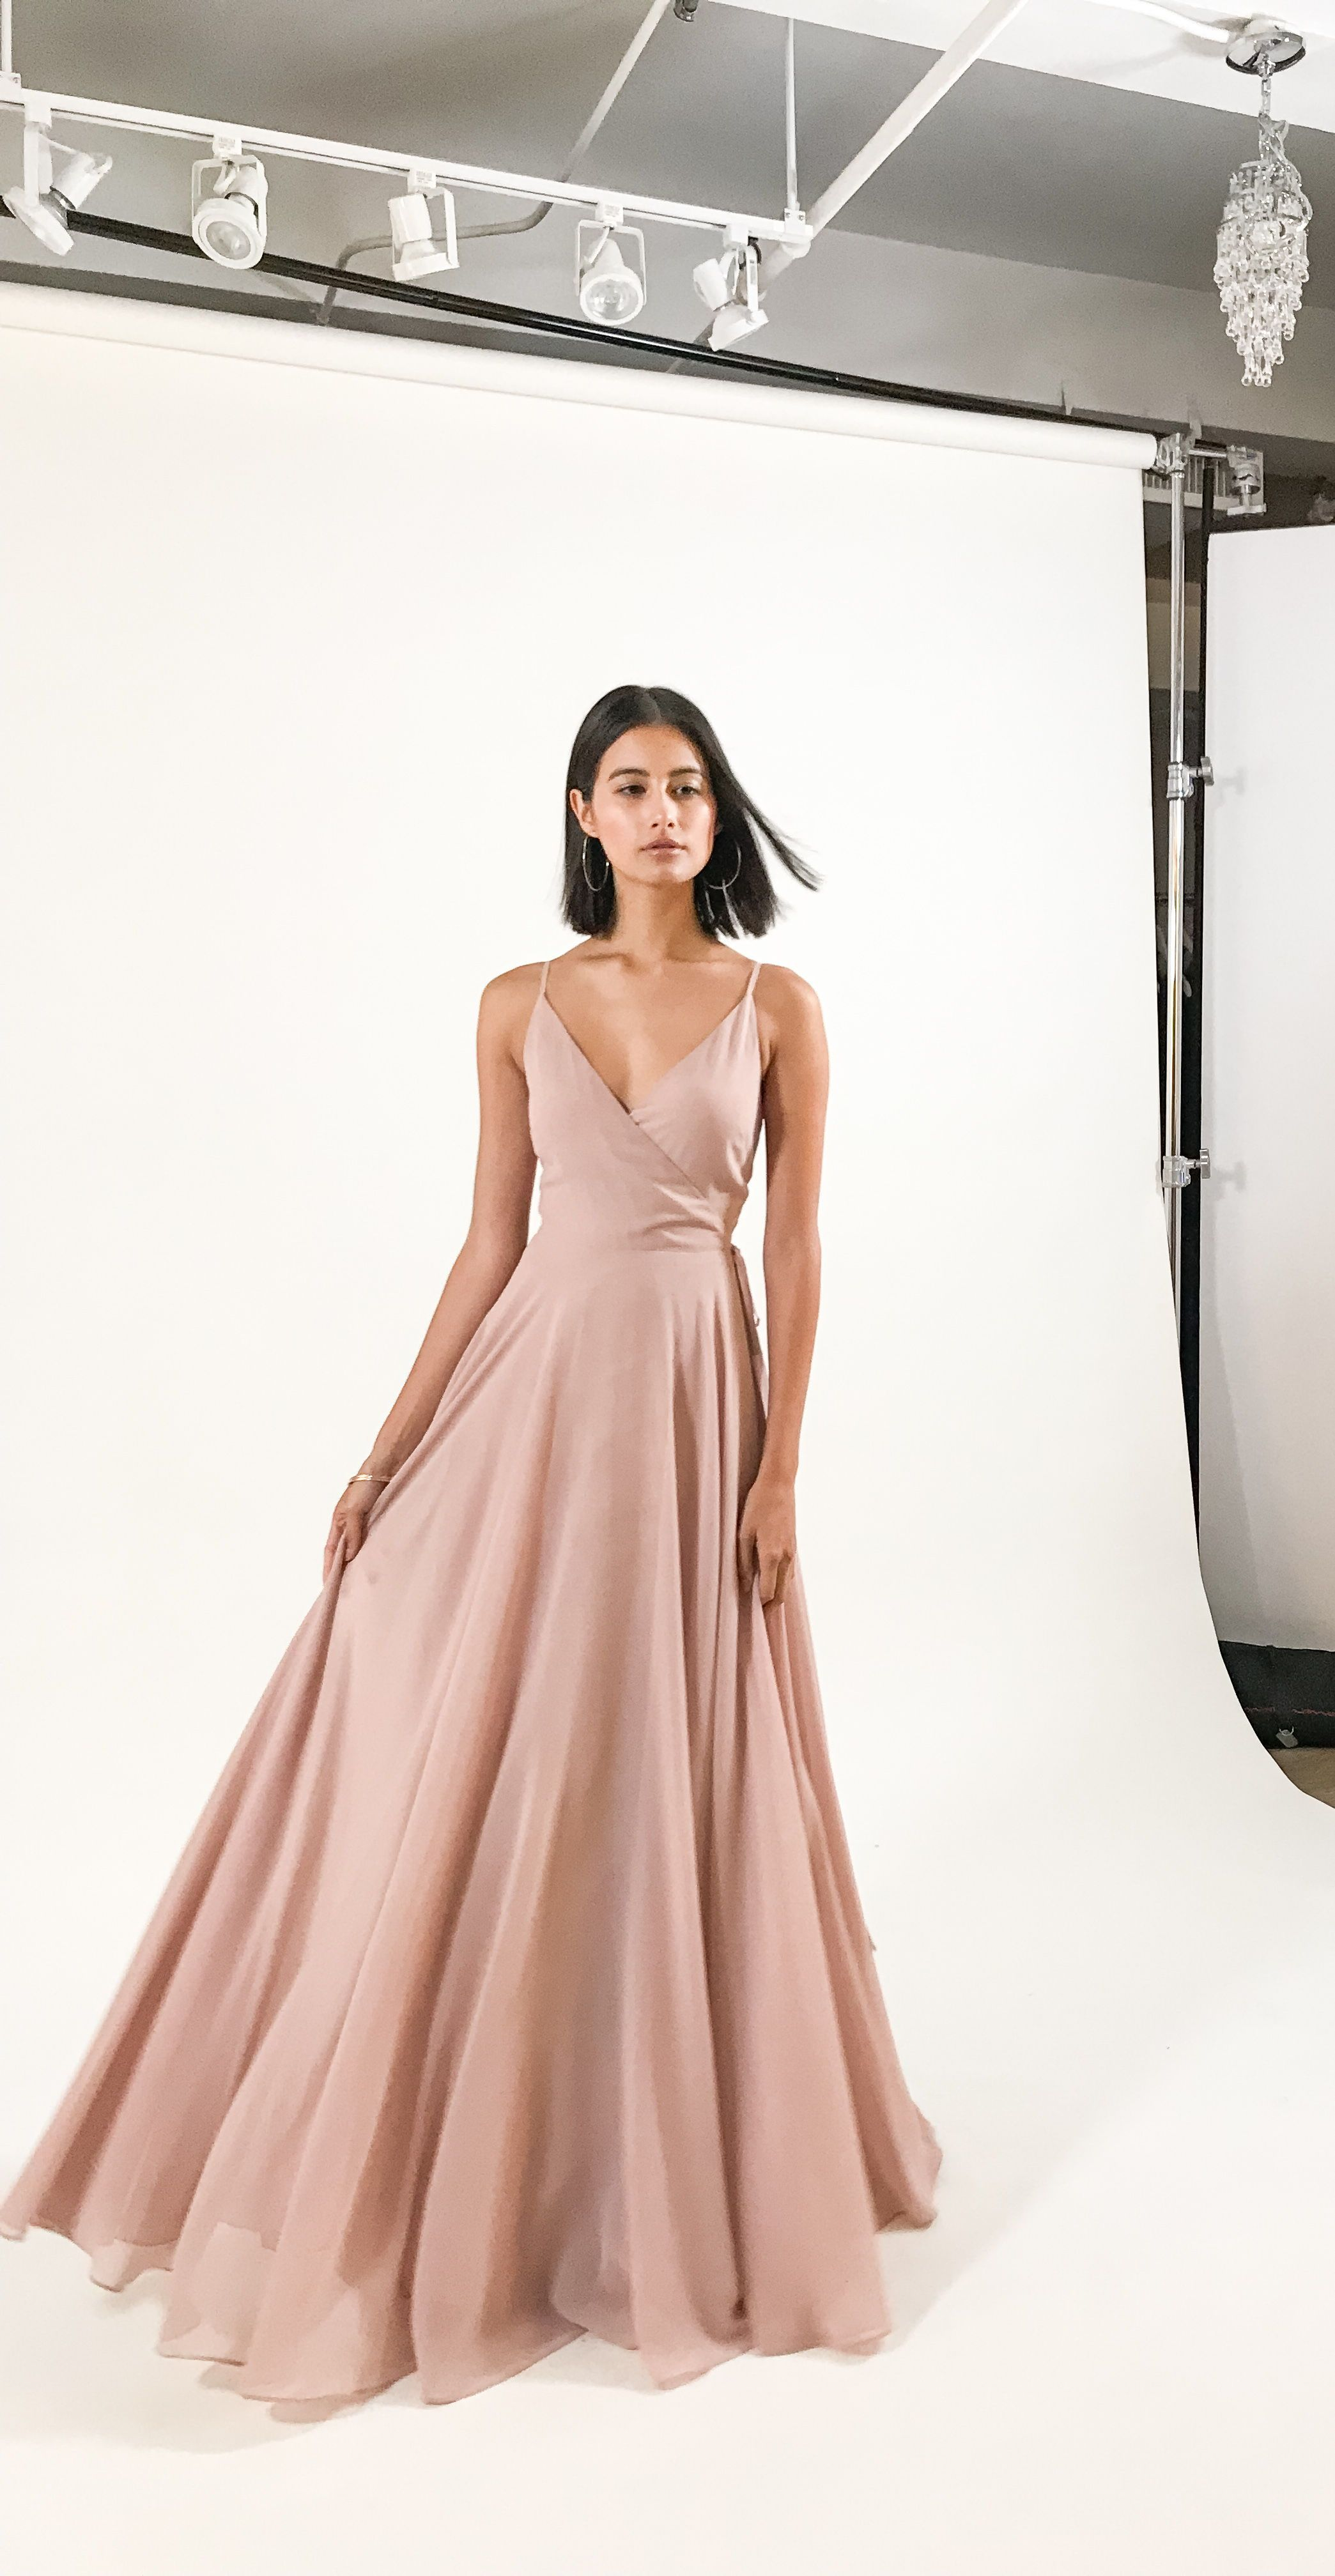 446dbd3011b Love a good wrap dress! The James dress by Jenny Yoo 2019 Bridesmaids is a  simple   effortless wrap dress with a spaghetti strap V neckline   an A  line ...